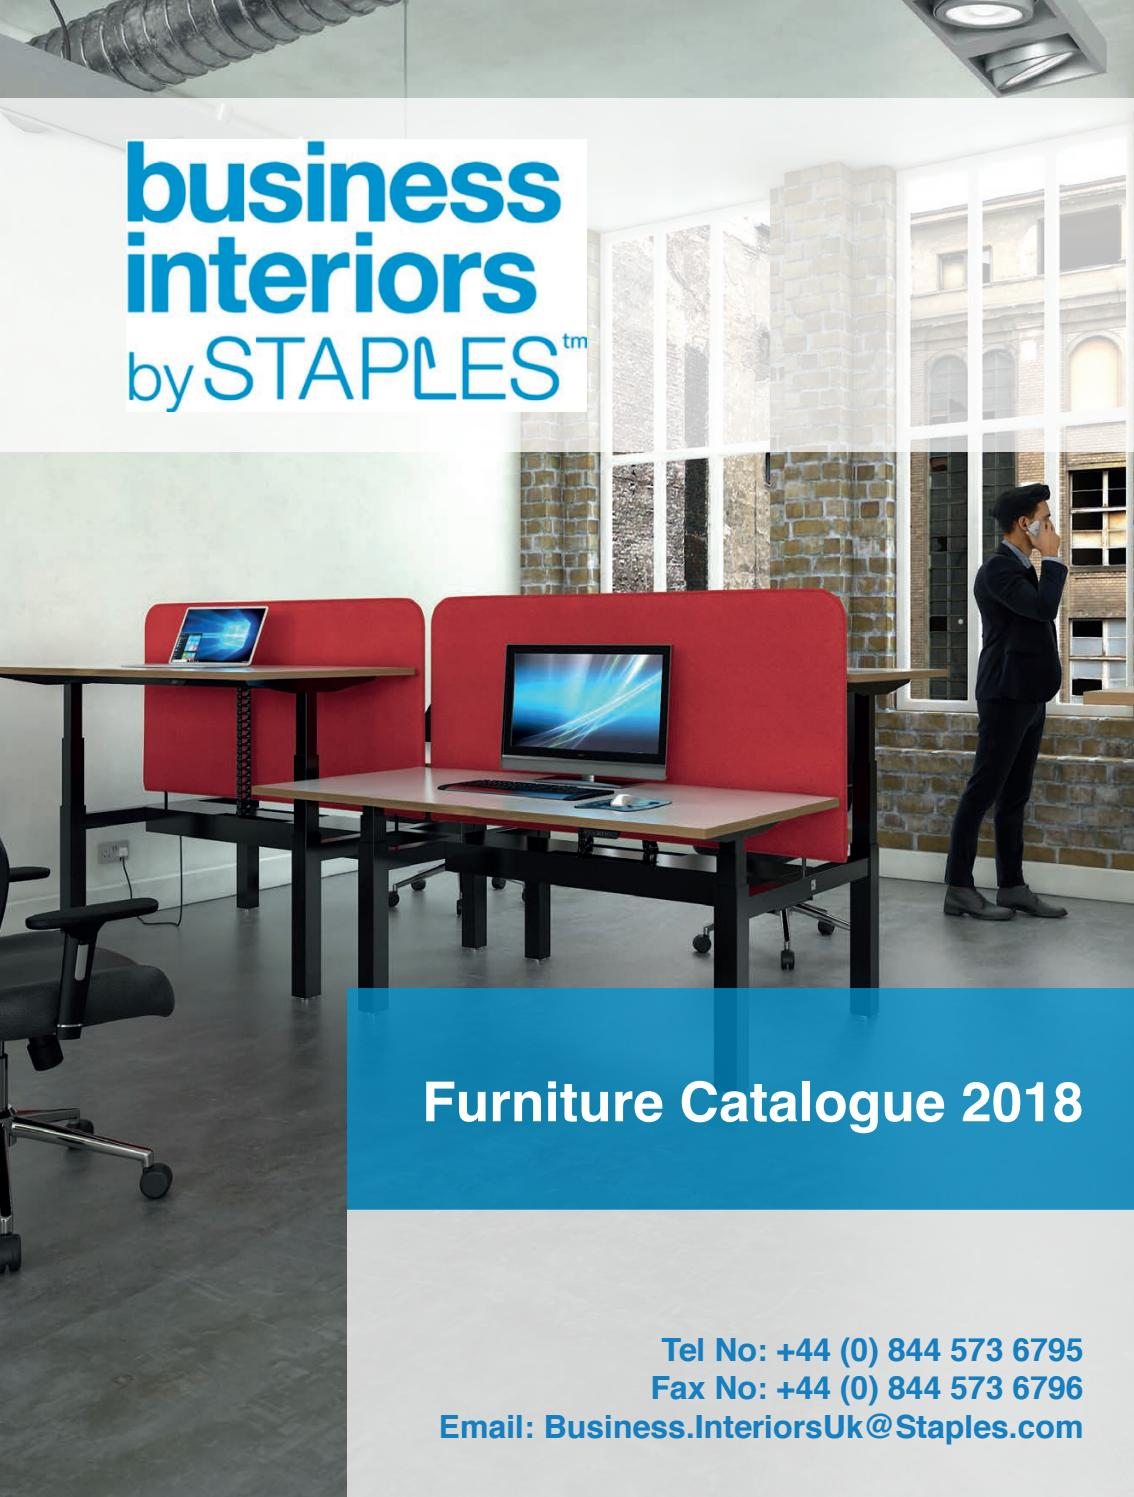 Furniture Catalogue 2018 by Staples issuu